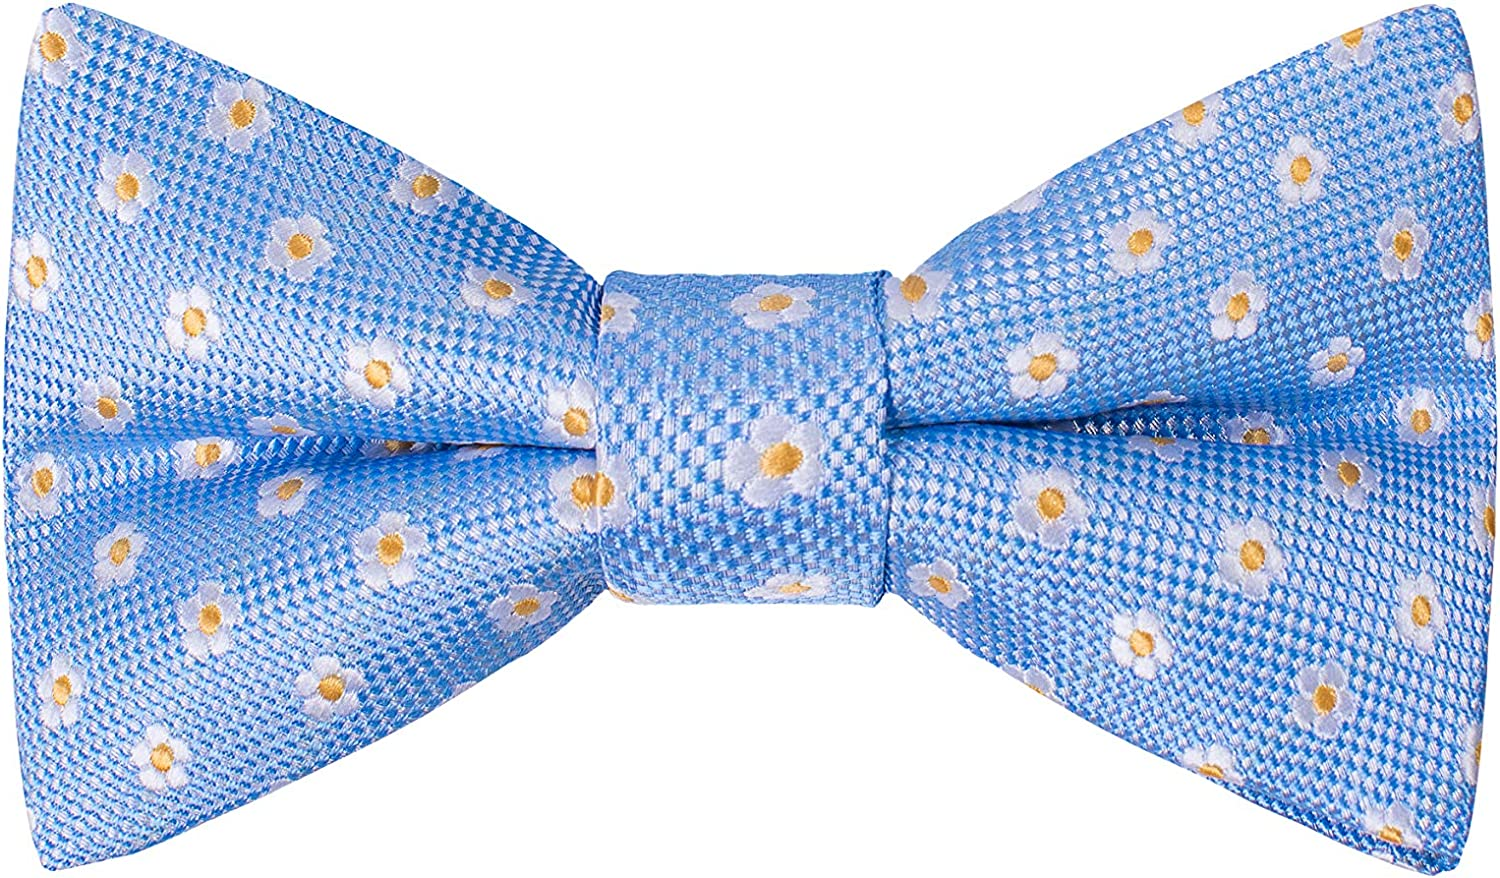 Working Tools Bow Tie by Masonic Revival Standard Self-Tied